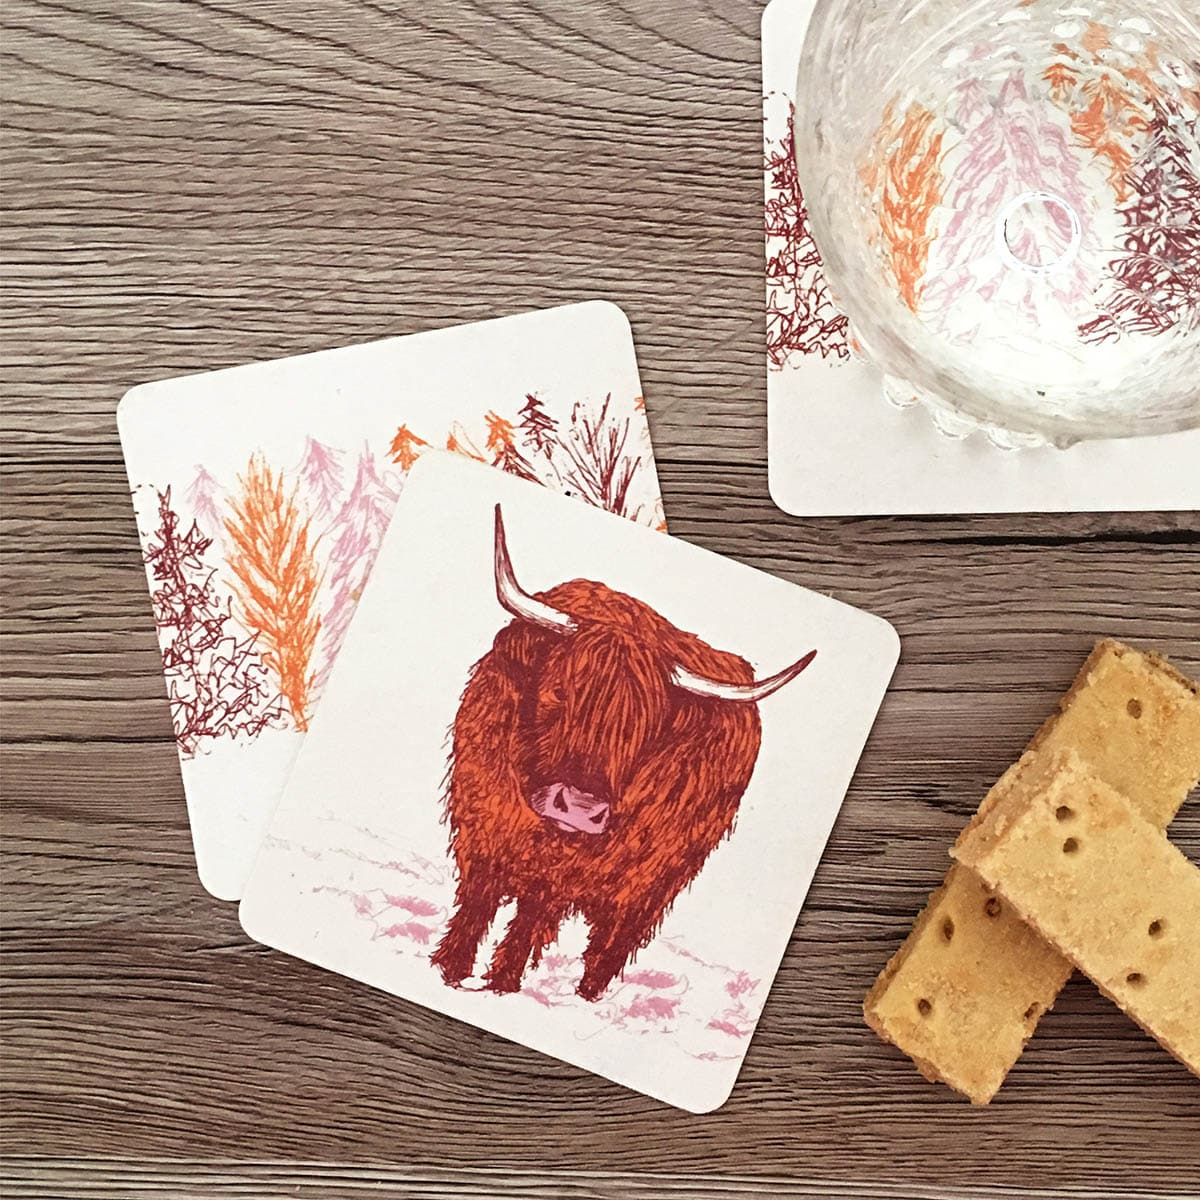 Scottish coasters in highland cow design by Cherith Harrison